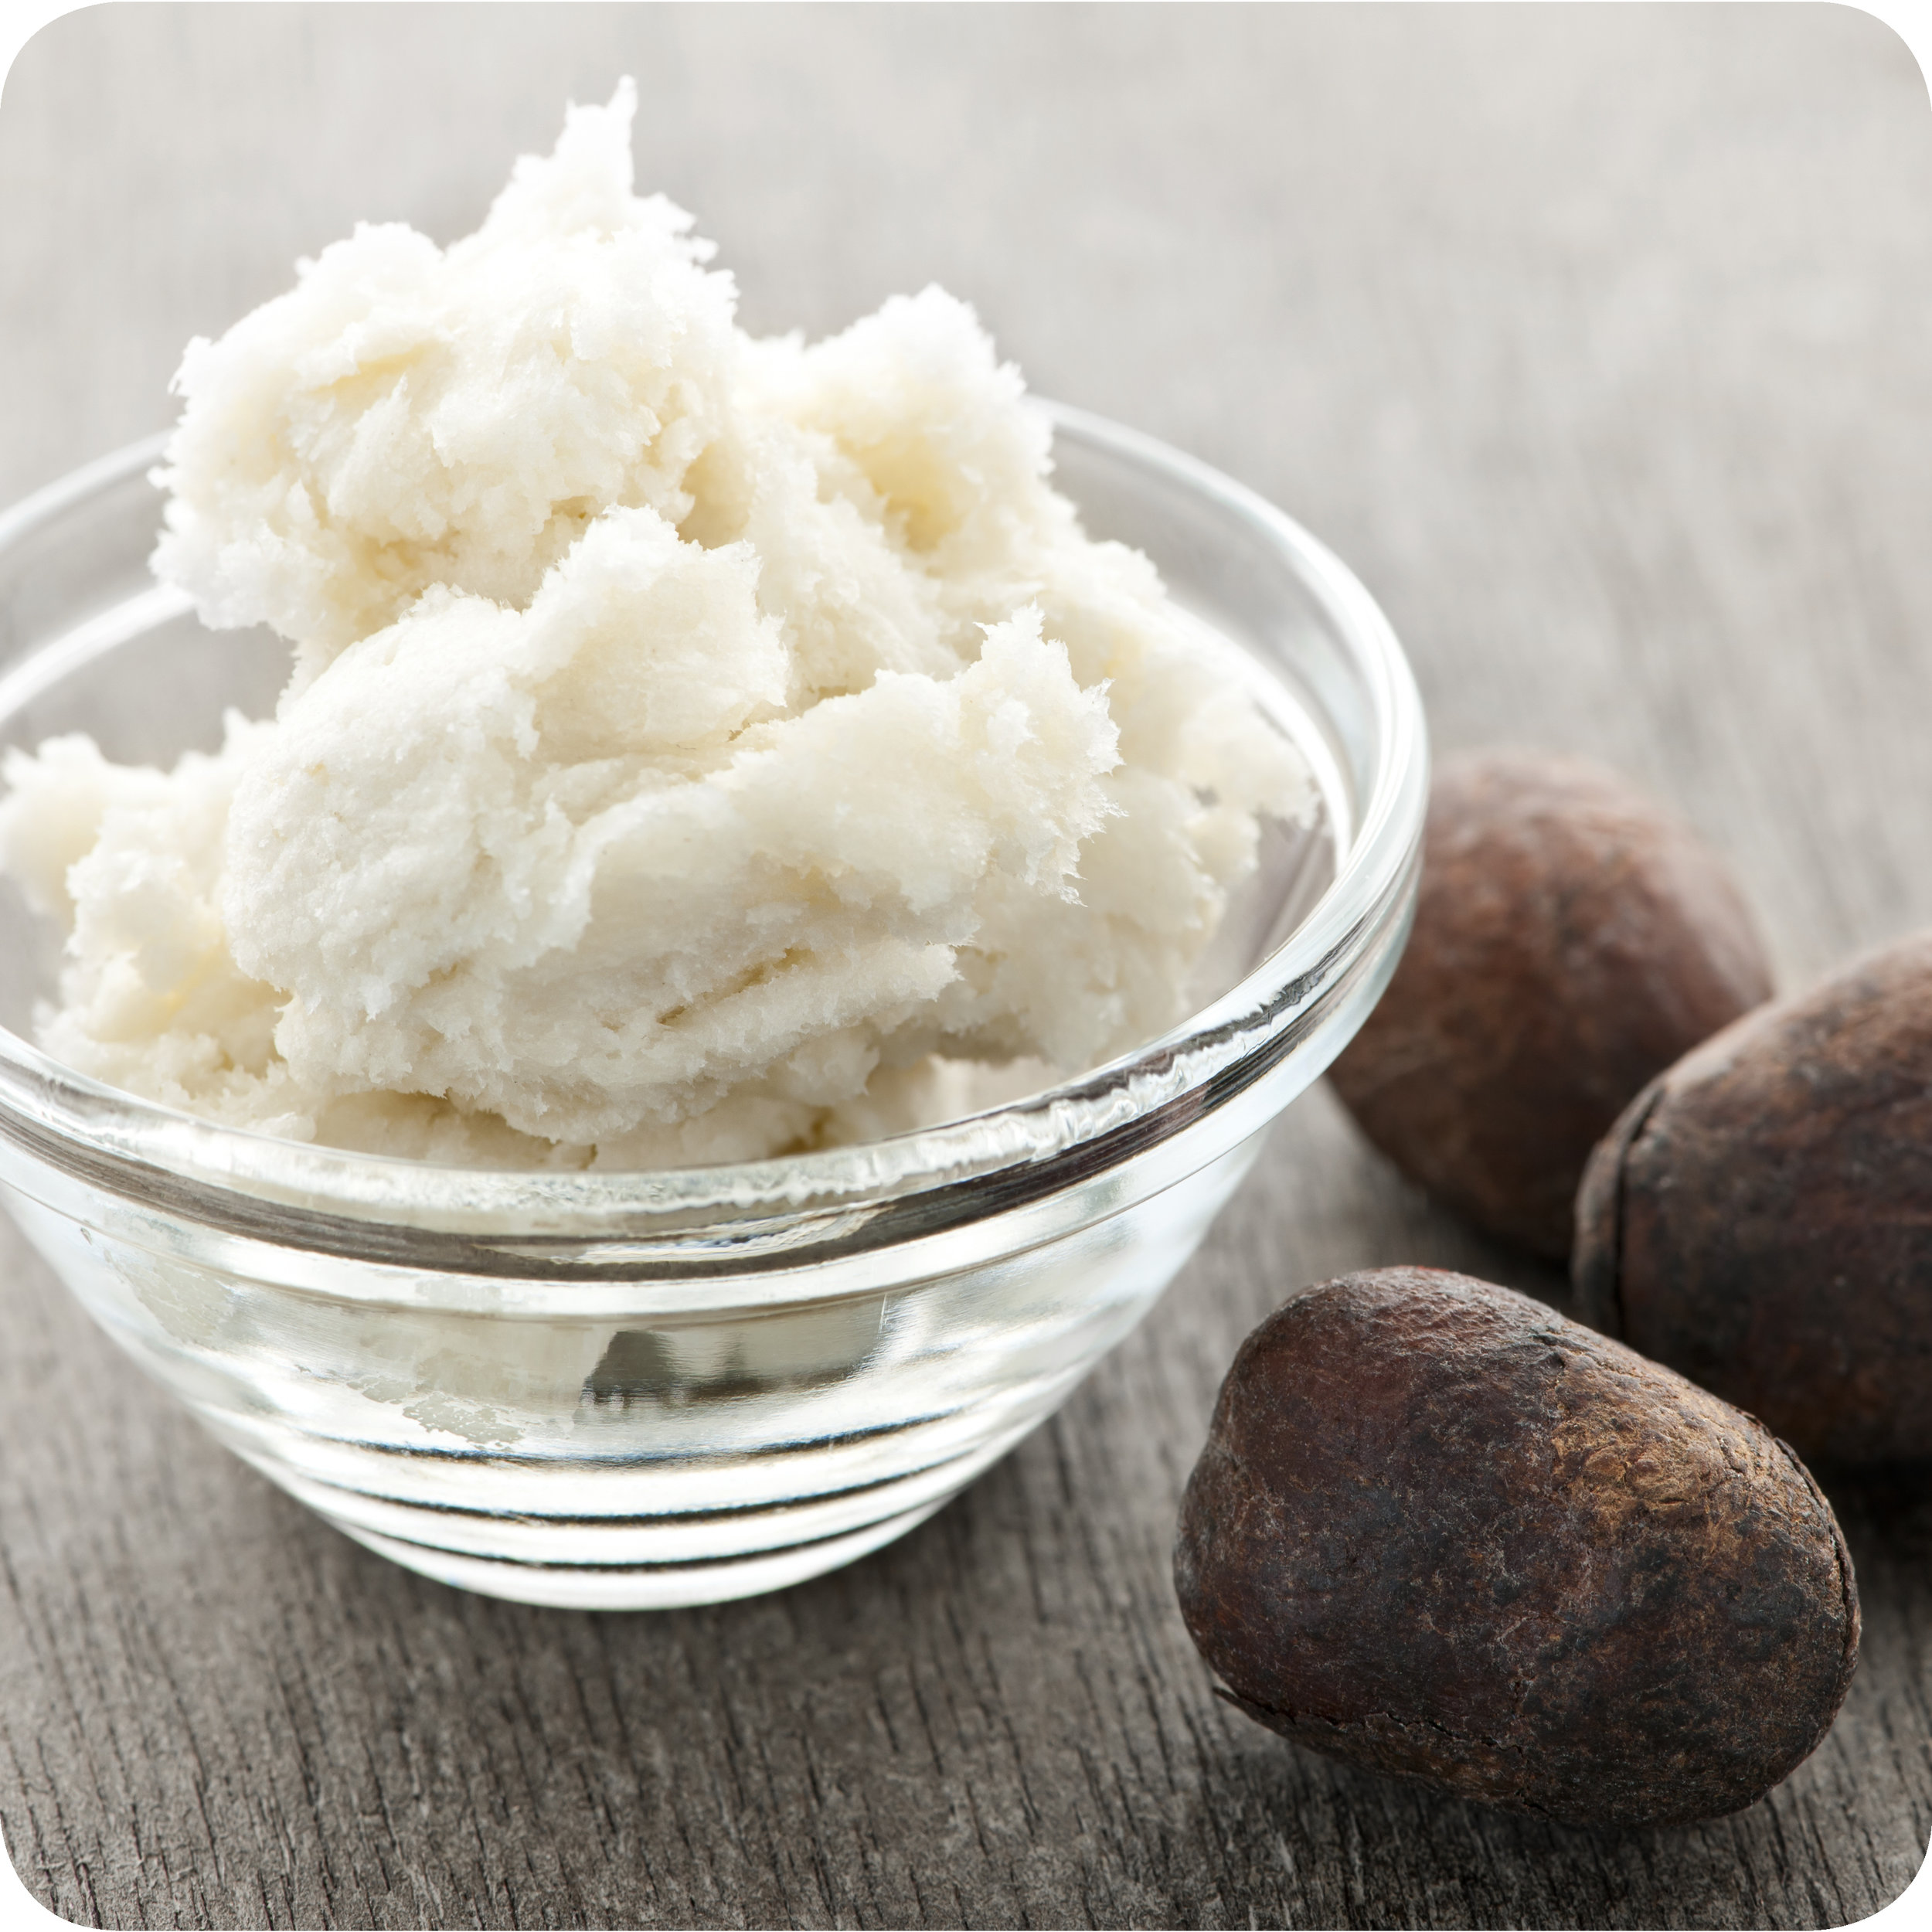 Shea butter and dried shea nuts.